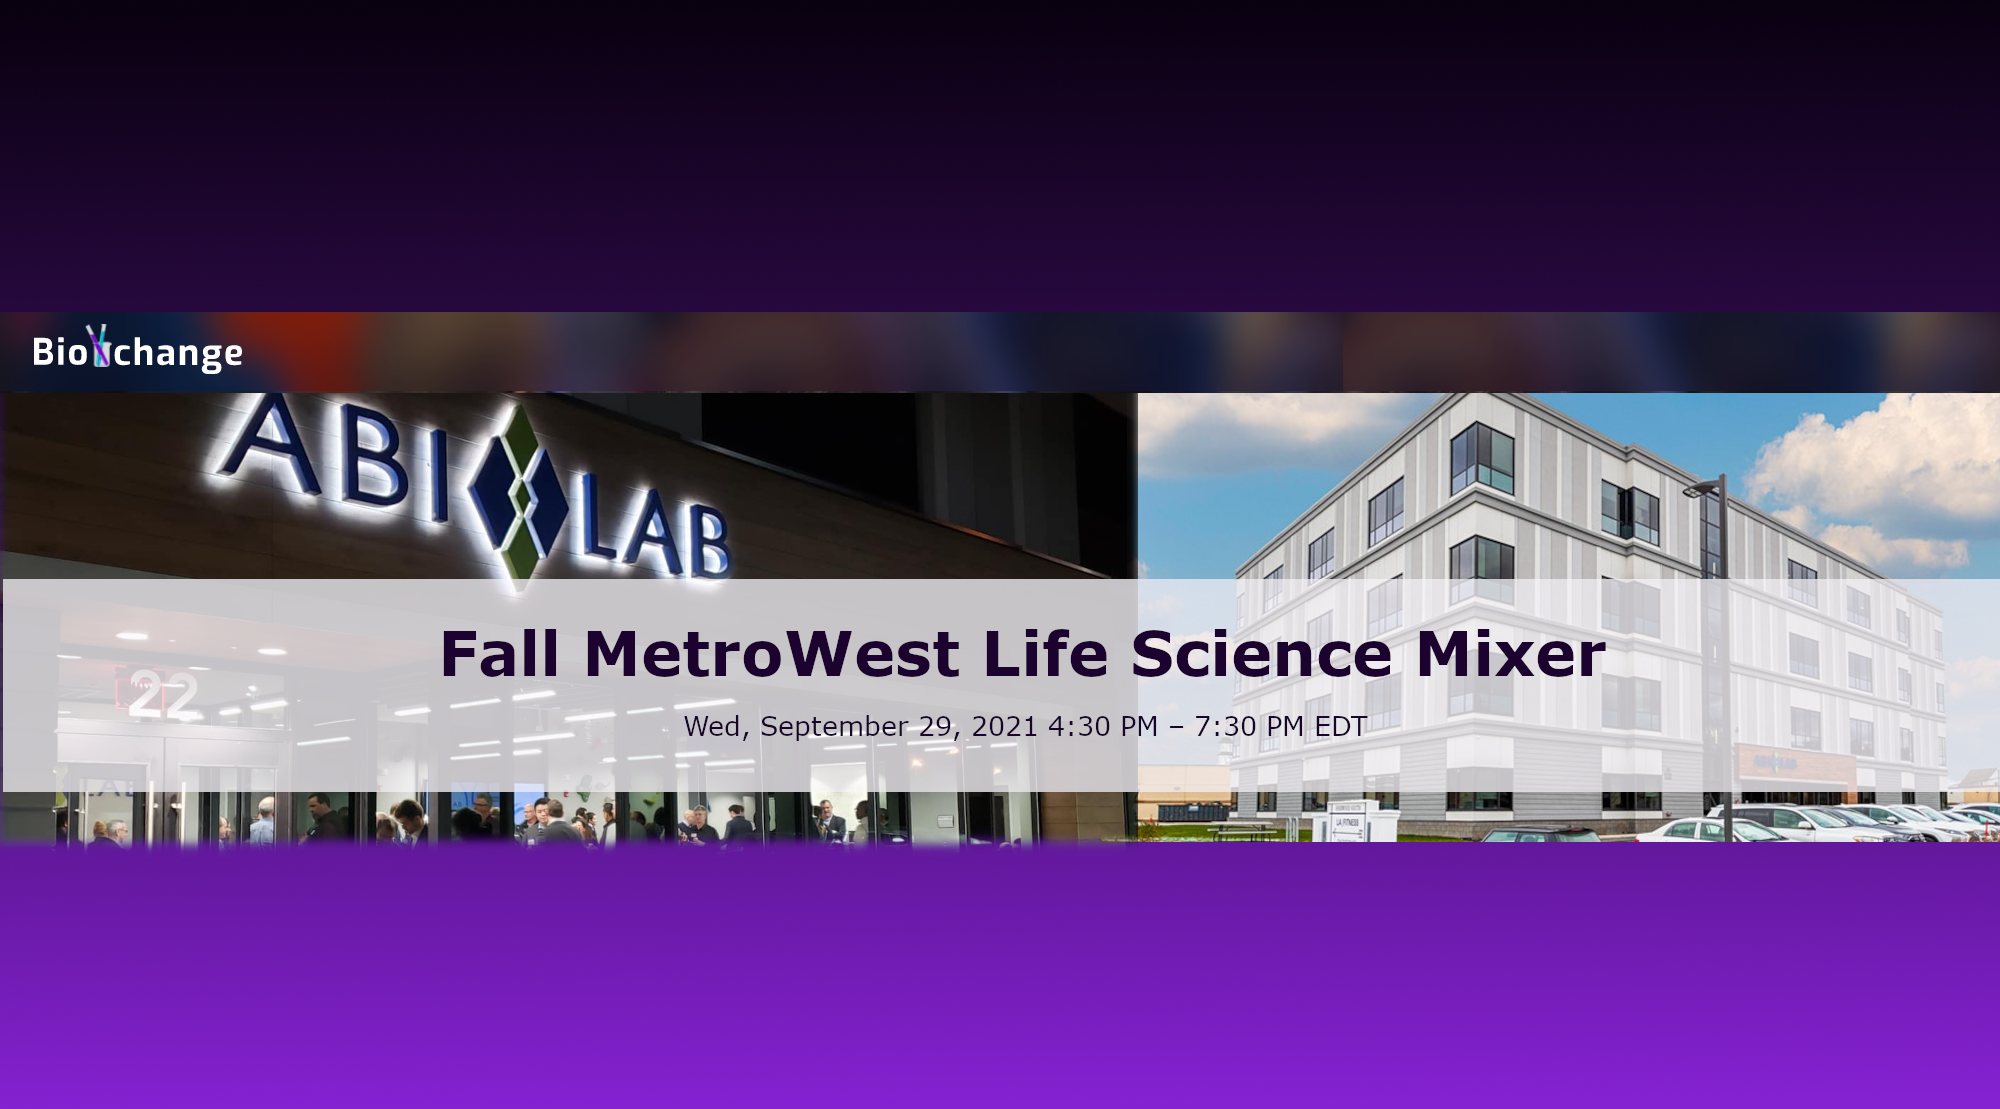 Fall MetroWest Life Science Mixer